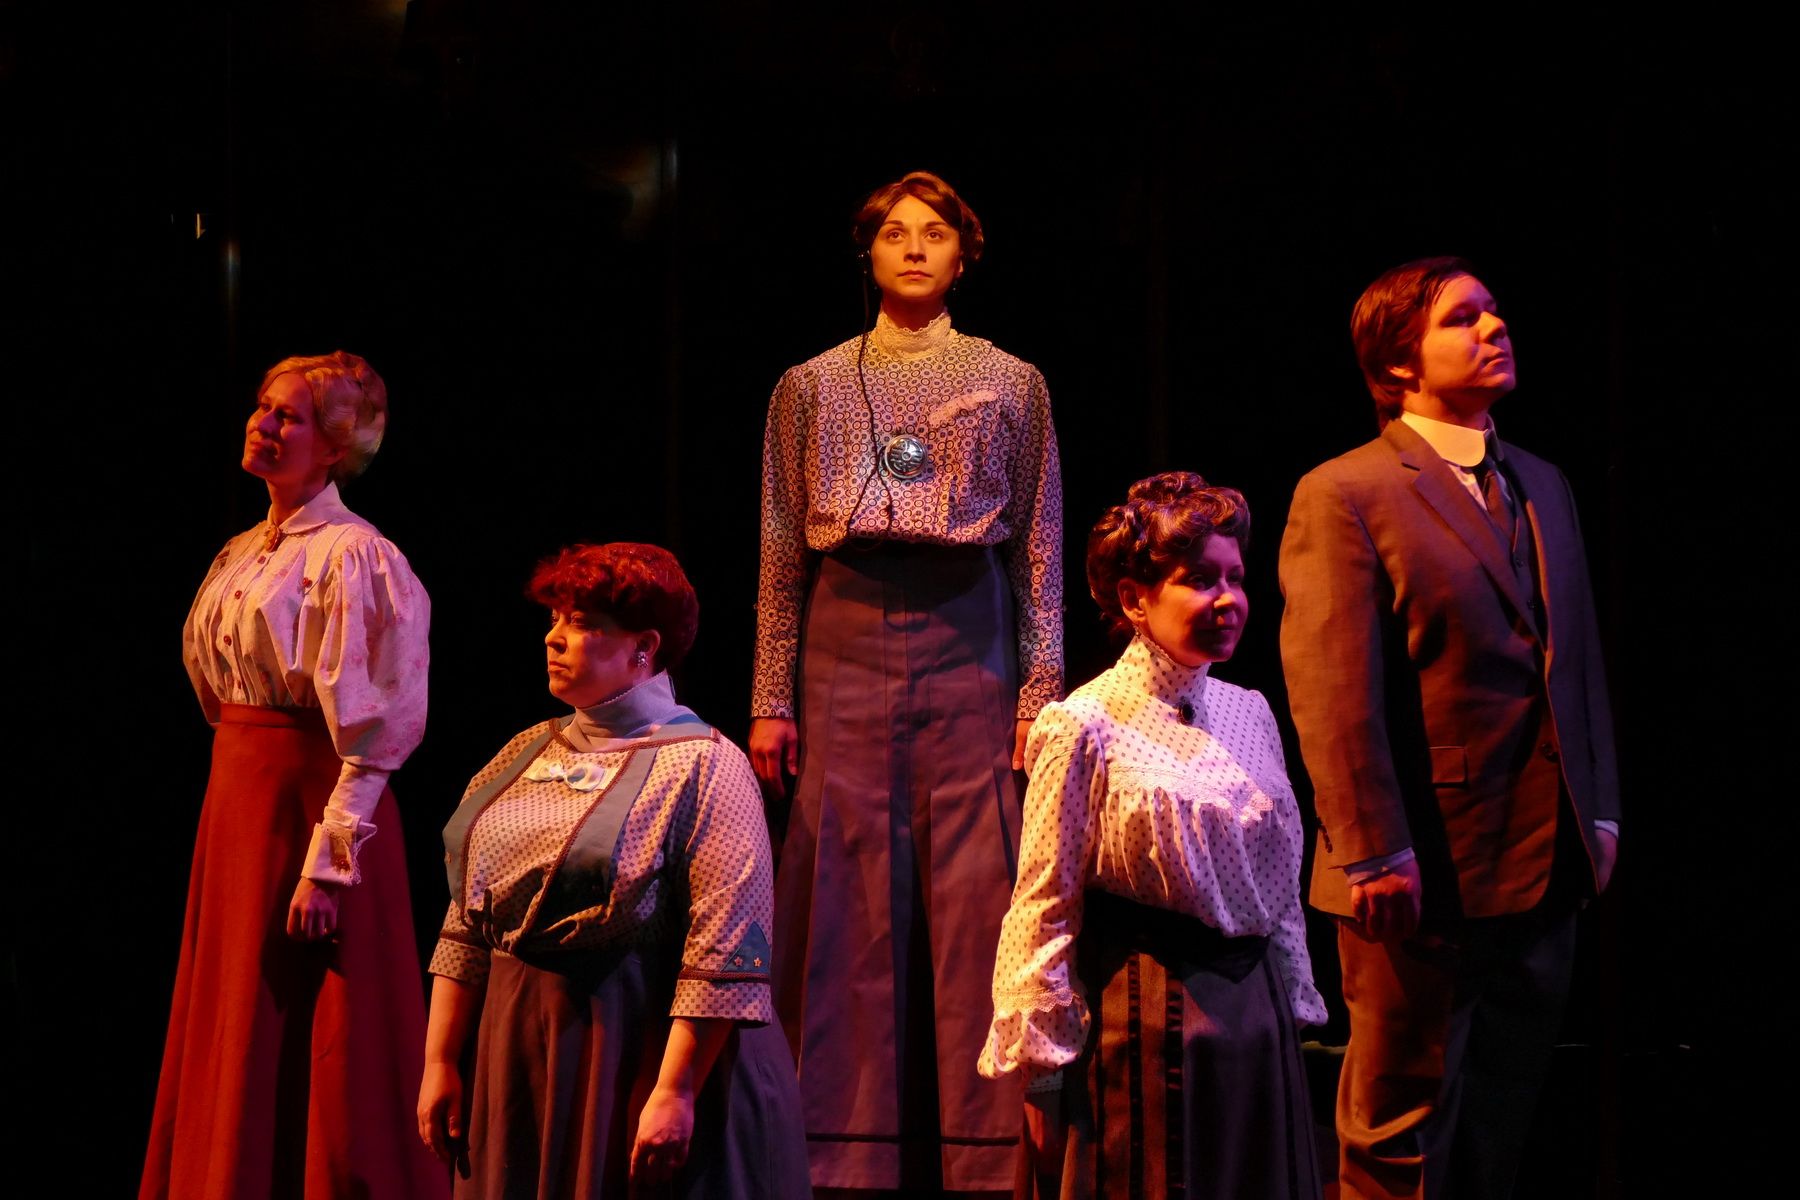 Jill Kenderes as Margaret Leavitt, Molly Clay as Williamina Fleming, Brittany Gaul as Henrietta Leavitt, Pam Matthews as Annie Cannon and Andrew Keller as Peter Shaw